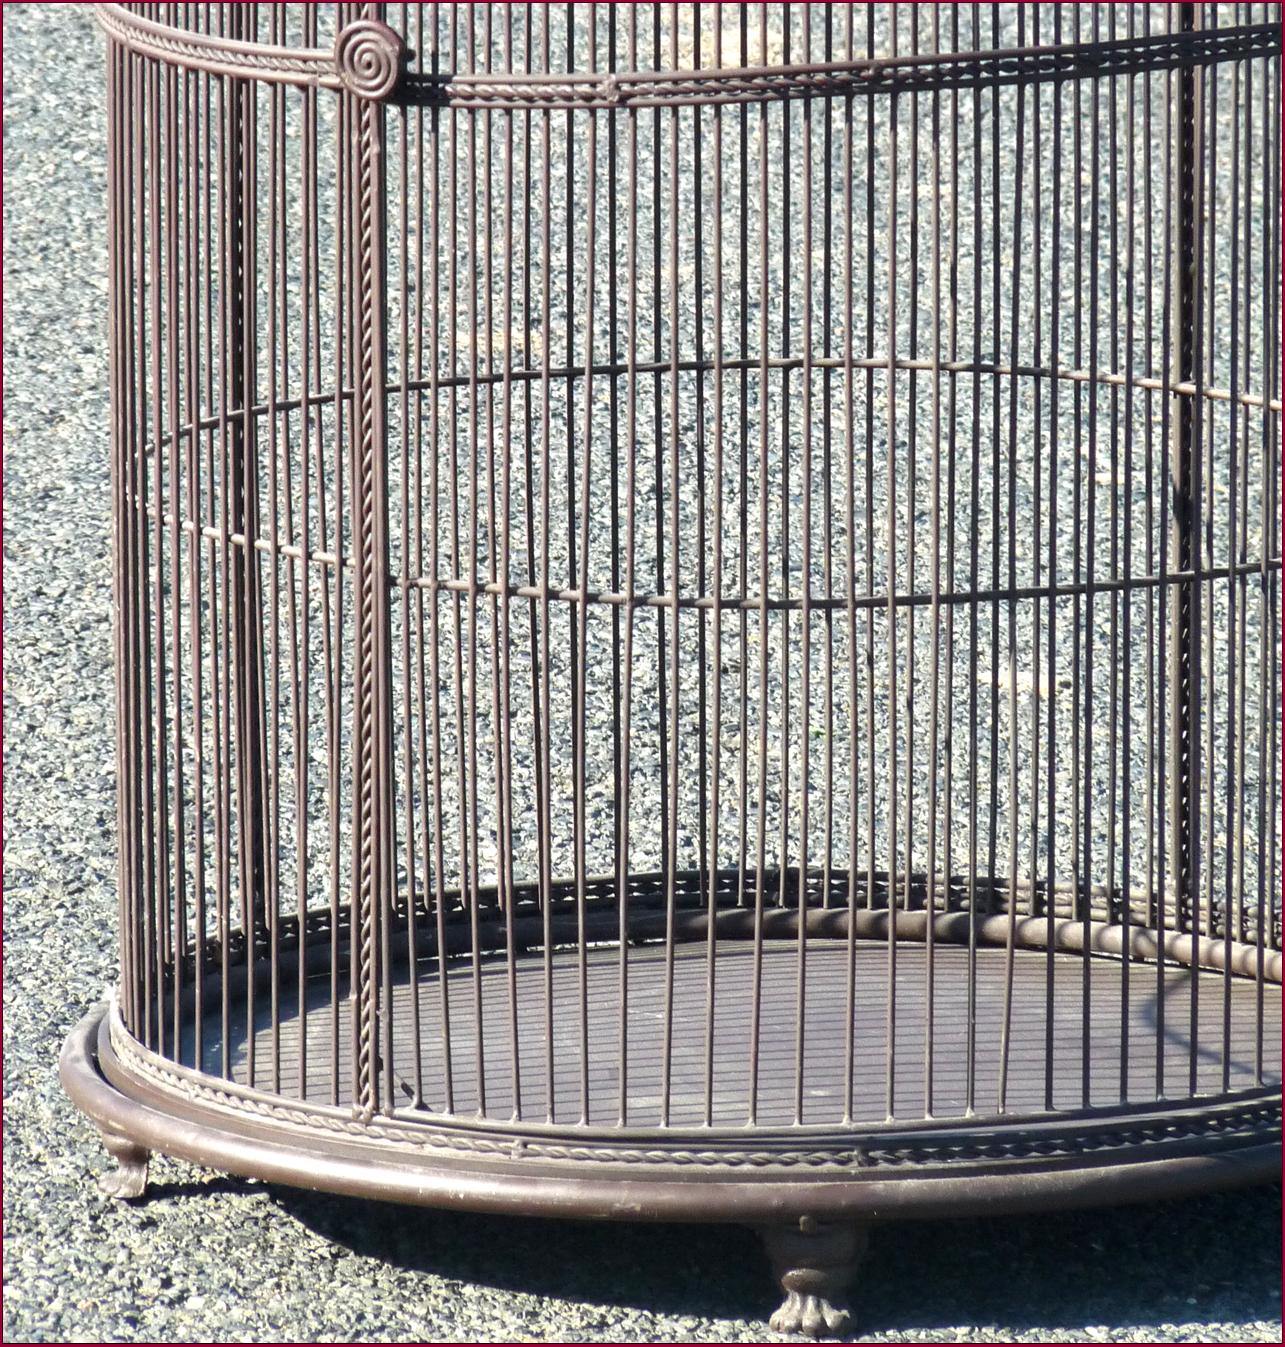 Voliere cage a oiseaux perroquet perruches canaries 170 for Cage a oiseaux deco